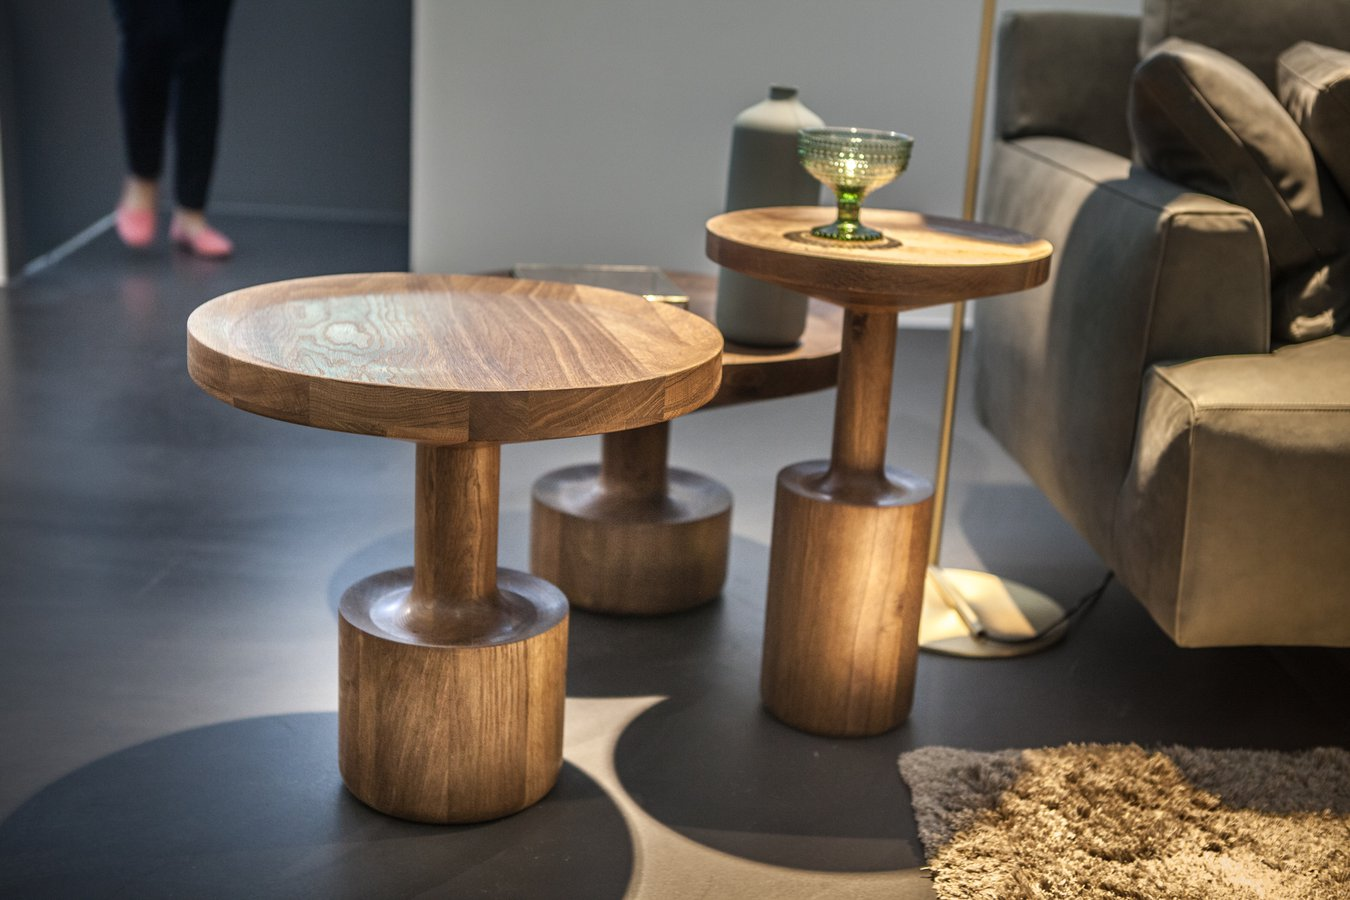 Roderick Vos Hss Designed 3 Round Oak Side Tables In Different Sizes And  Height, Named KIGI,   U0027a Family Of Treesu0027  Strongly Influenced By The  Japanese ...